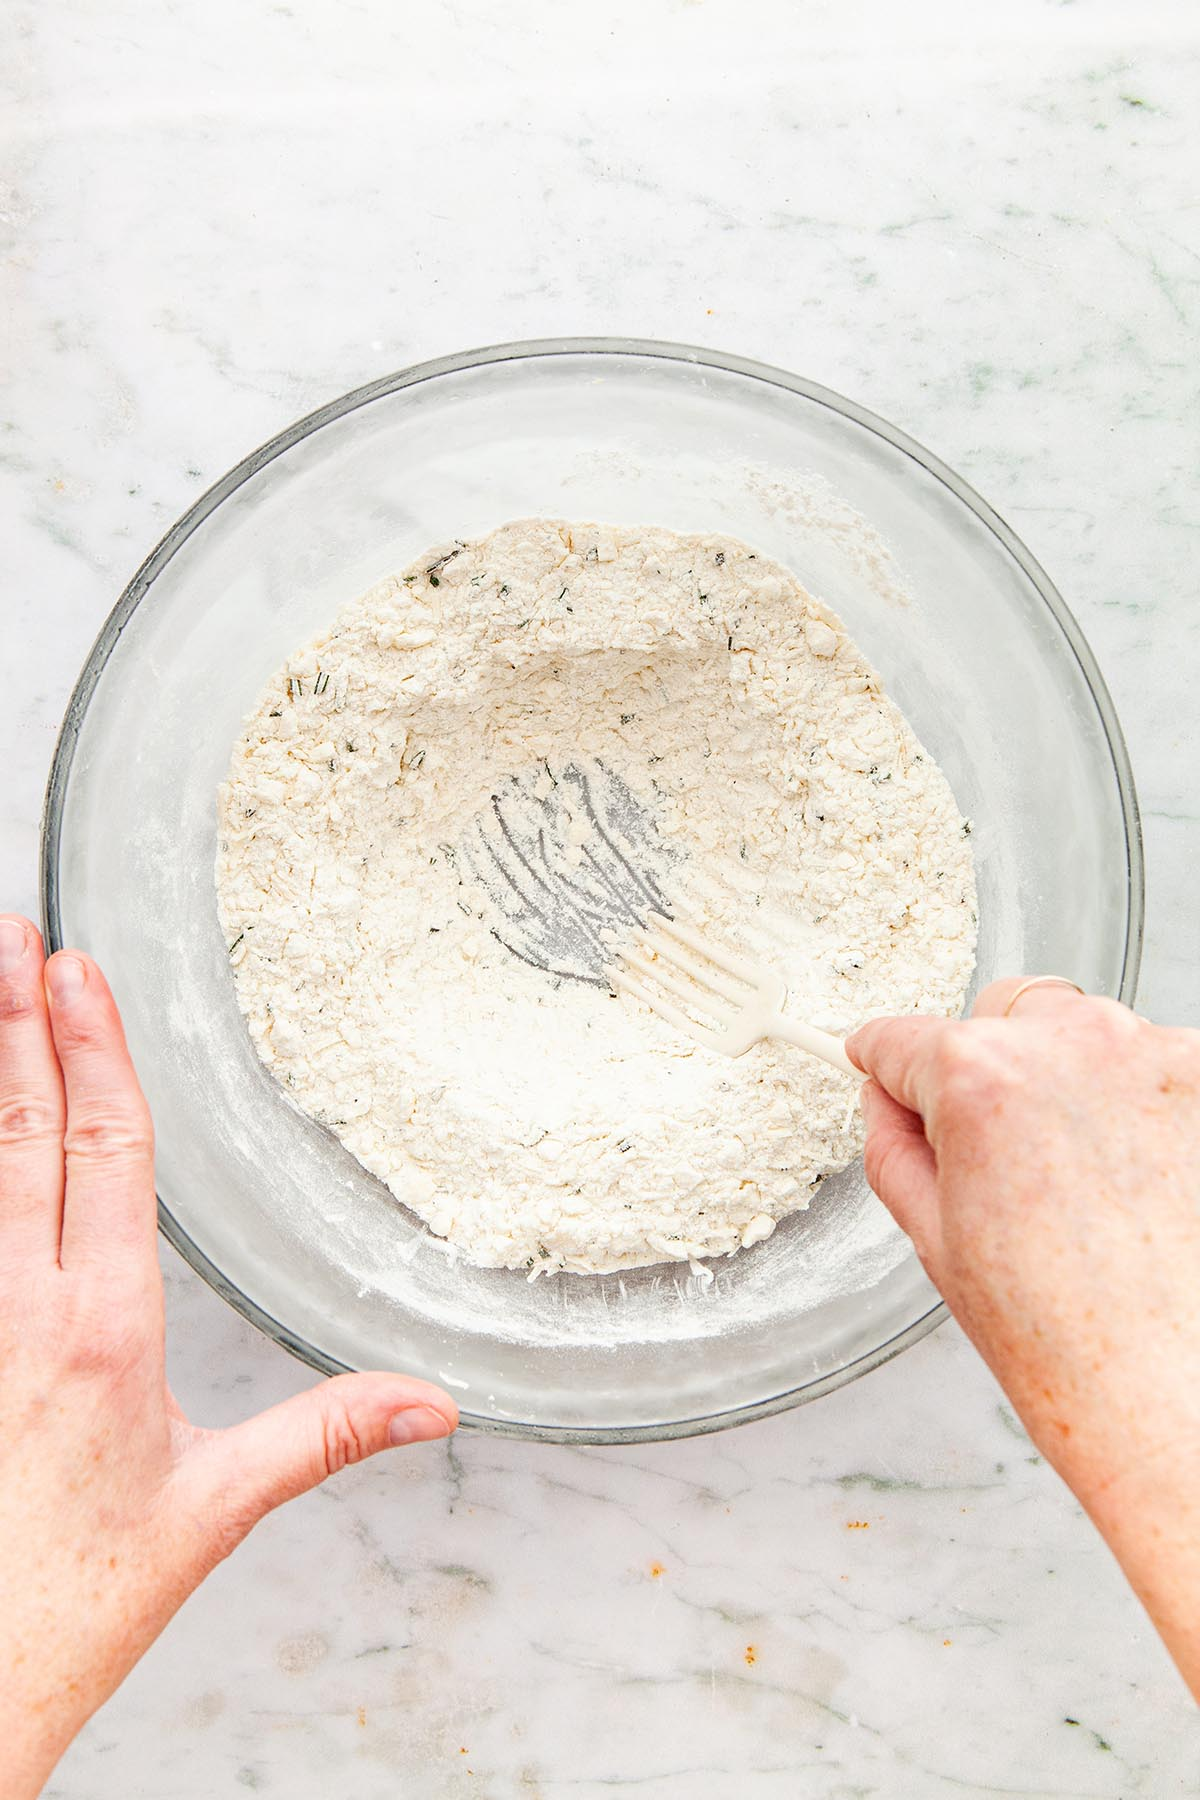 Hands making a well in the middle of a bowl of flour with a fork.